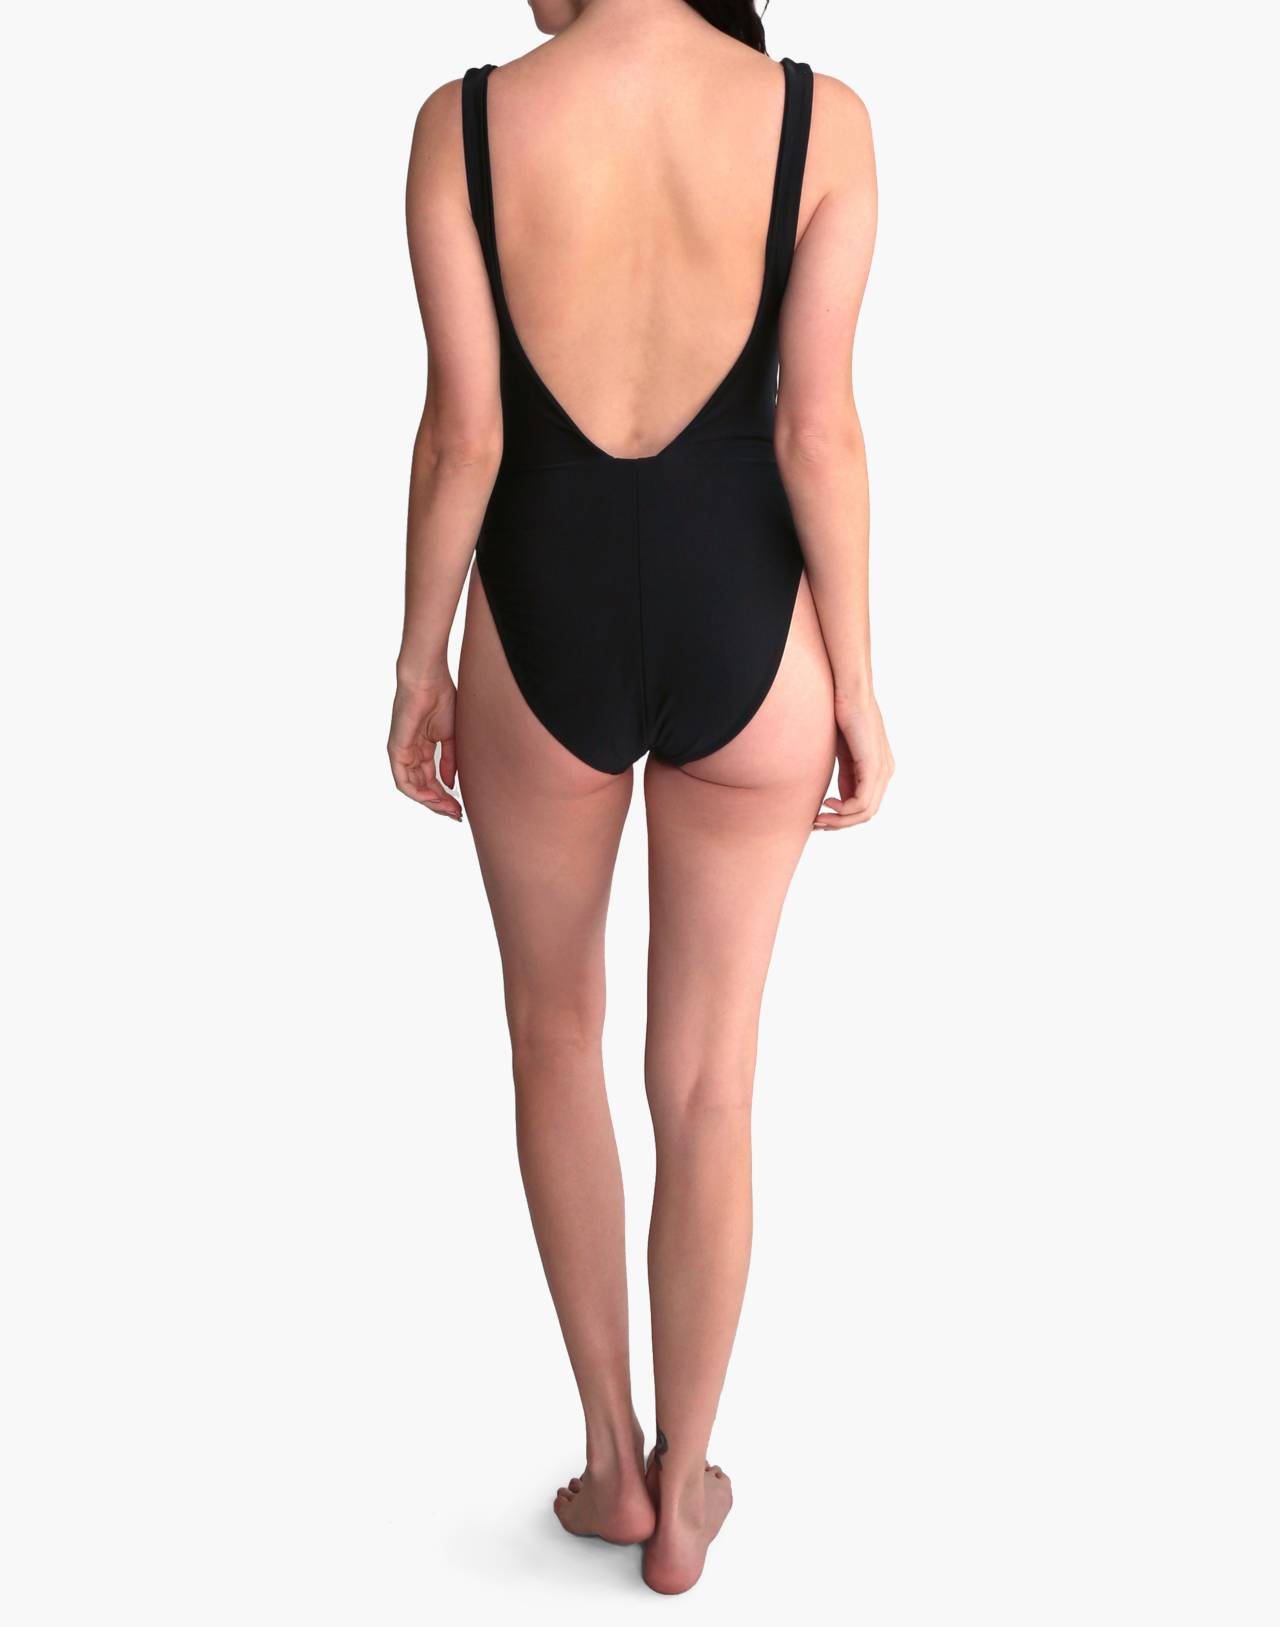 GALAMAAR® Roe Maillot One-Piece Swimsuit in black image 3